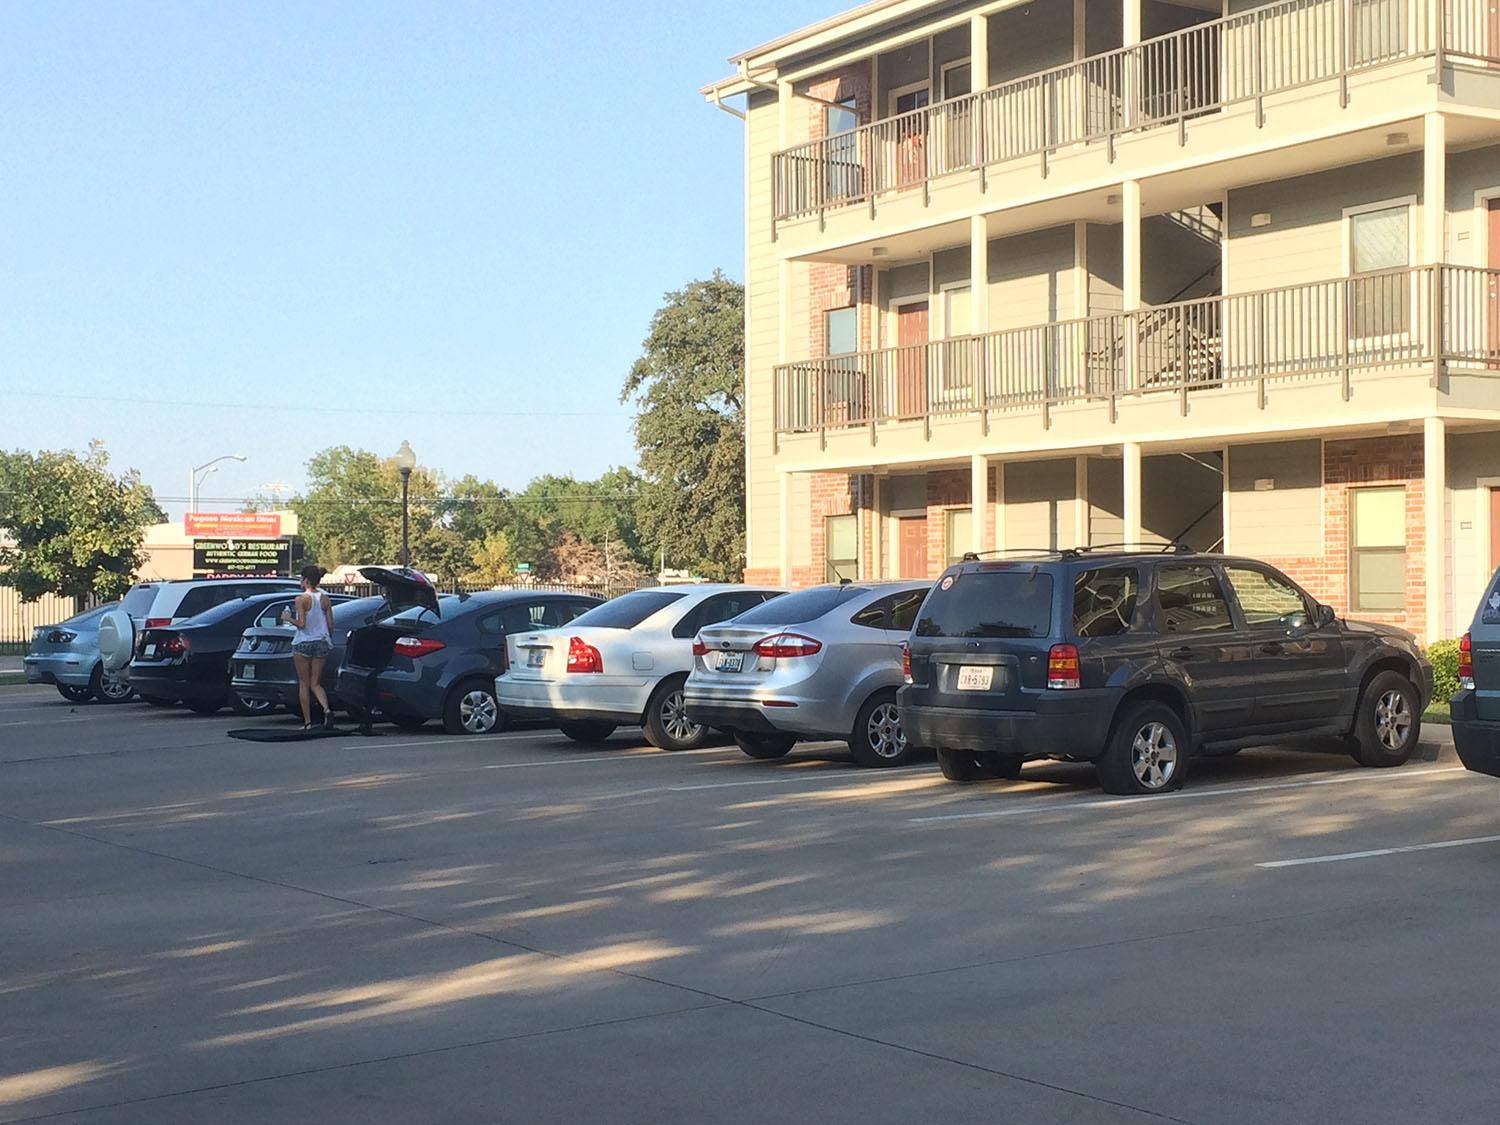 Several tires at Edge 55 Apartments were slashed last weekend, sparking new security measures for the complex.